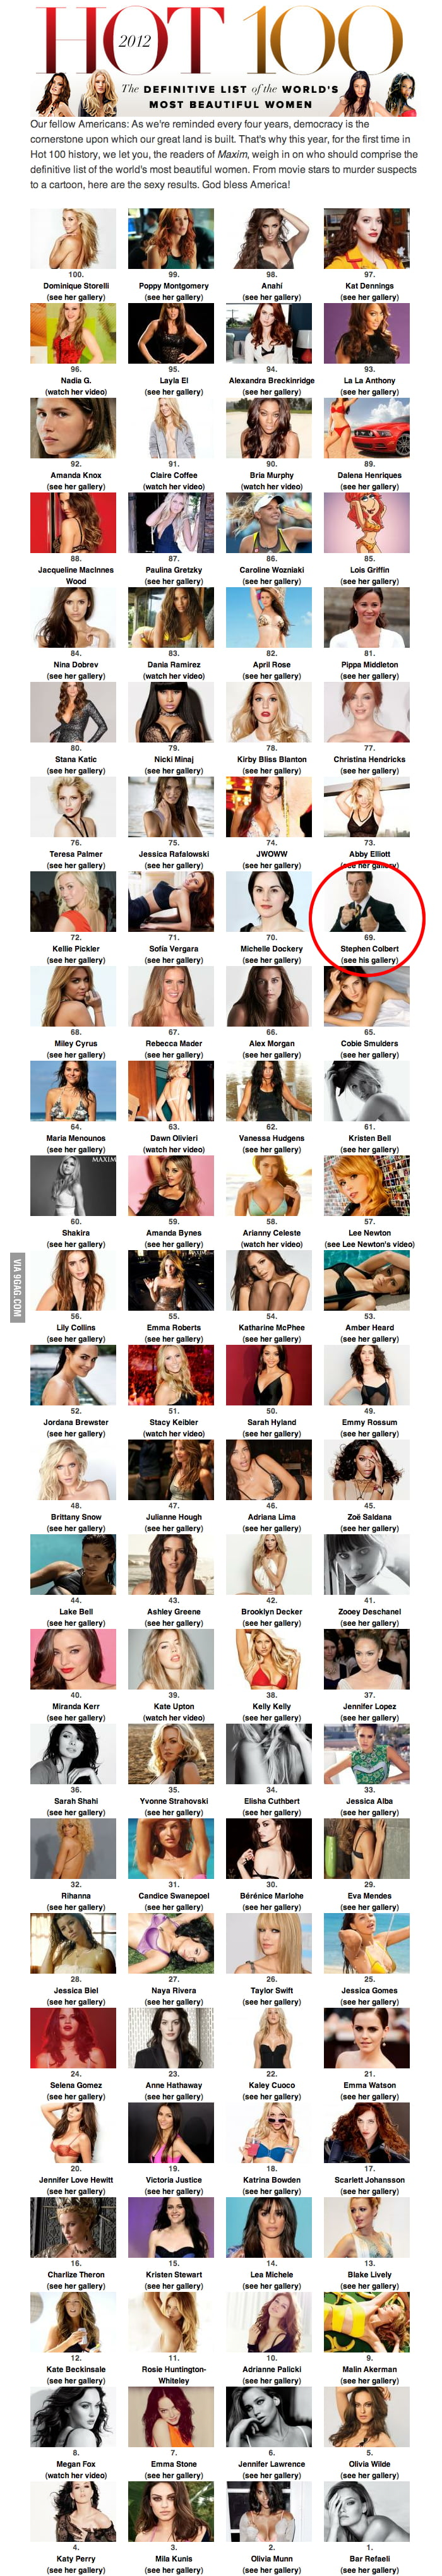 2012 Maxim Hot 100, you're doing it right. (check #69)